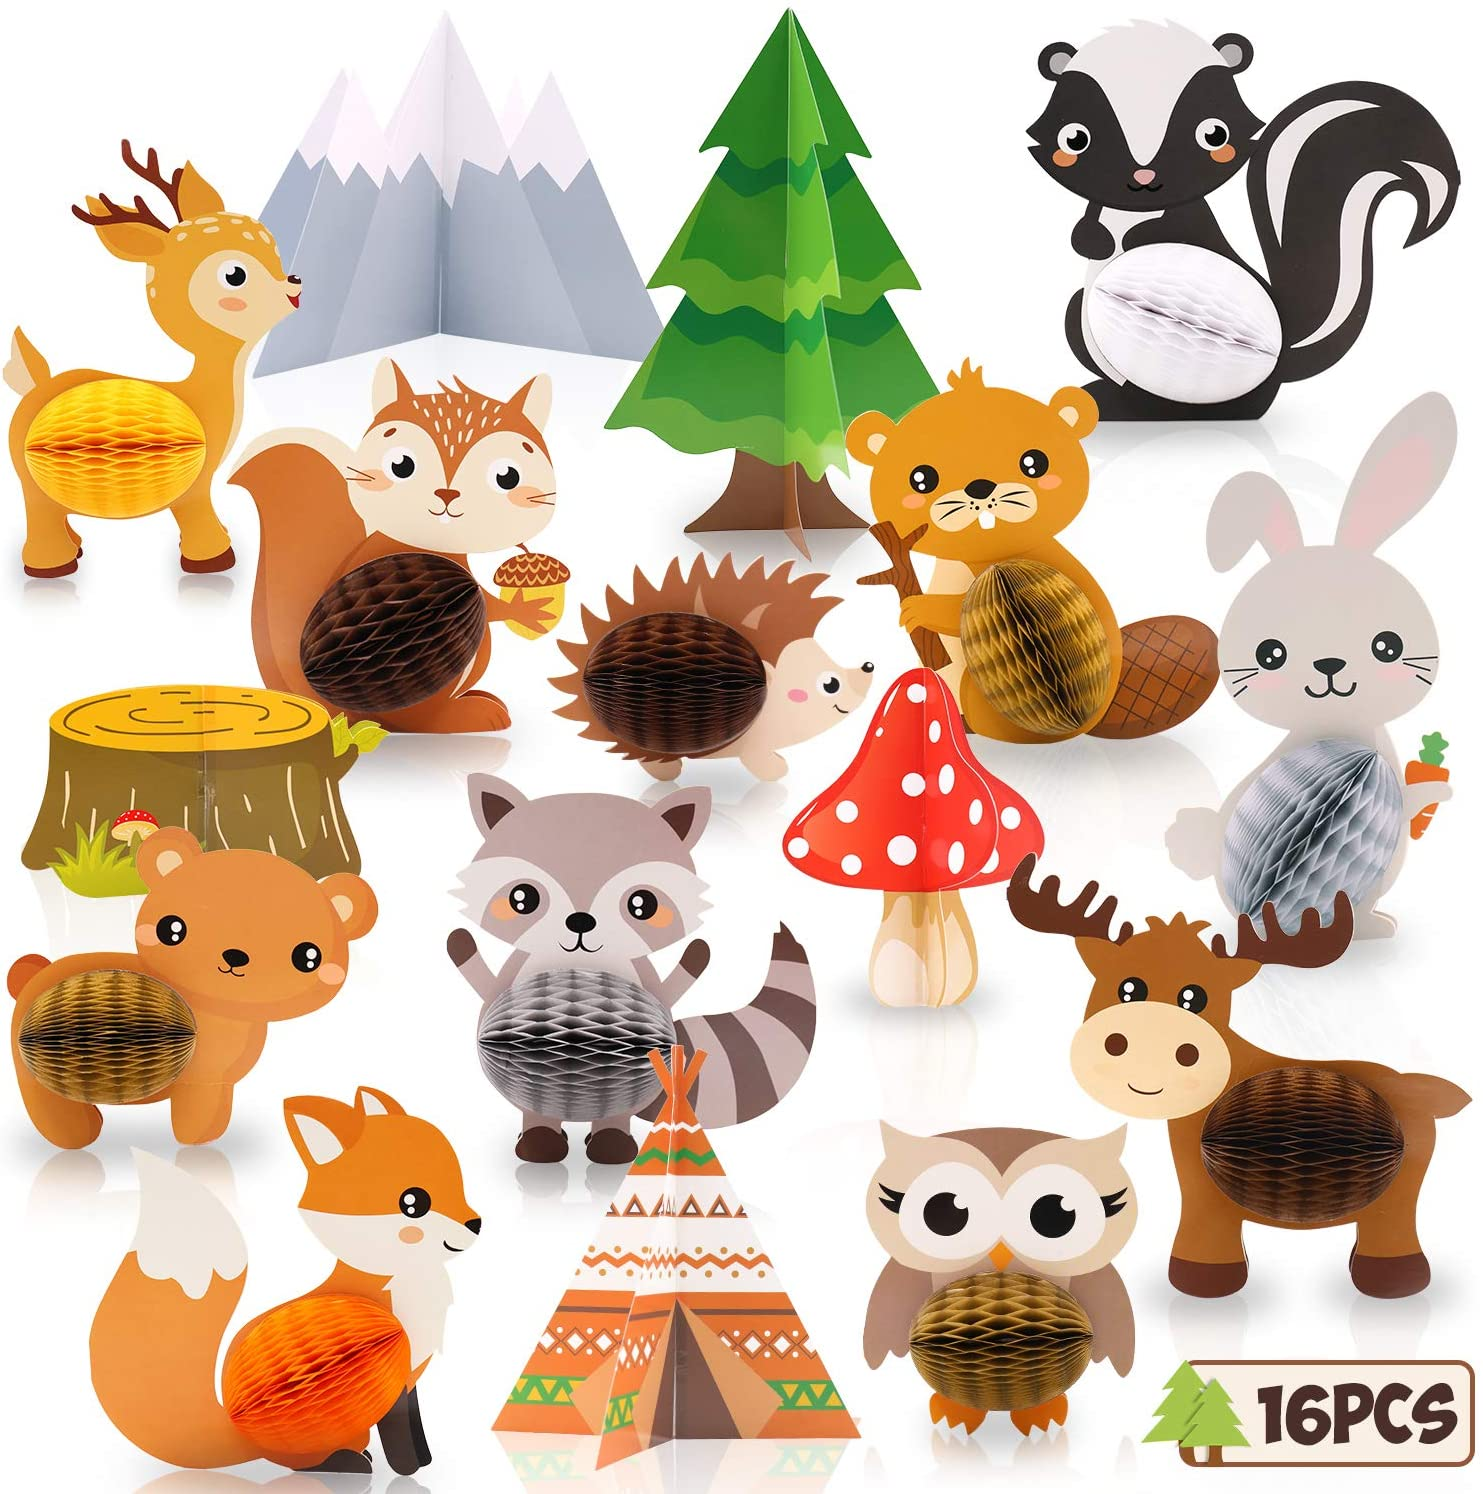 16PCS Woodland Animals Honeycomb Centerpieces Forest Friends 3D Table Toppers for Woodland Baby Shower Birthday Decorations Wild One Camping Party Supplies